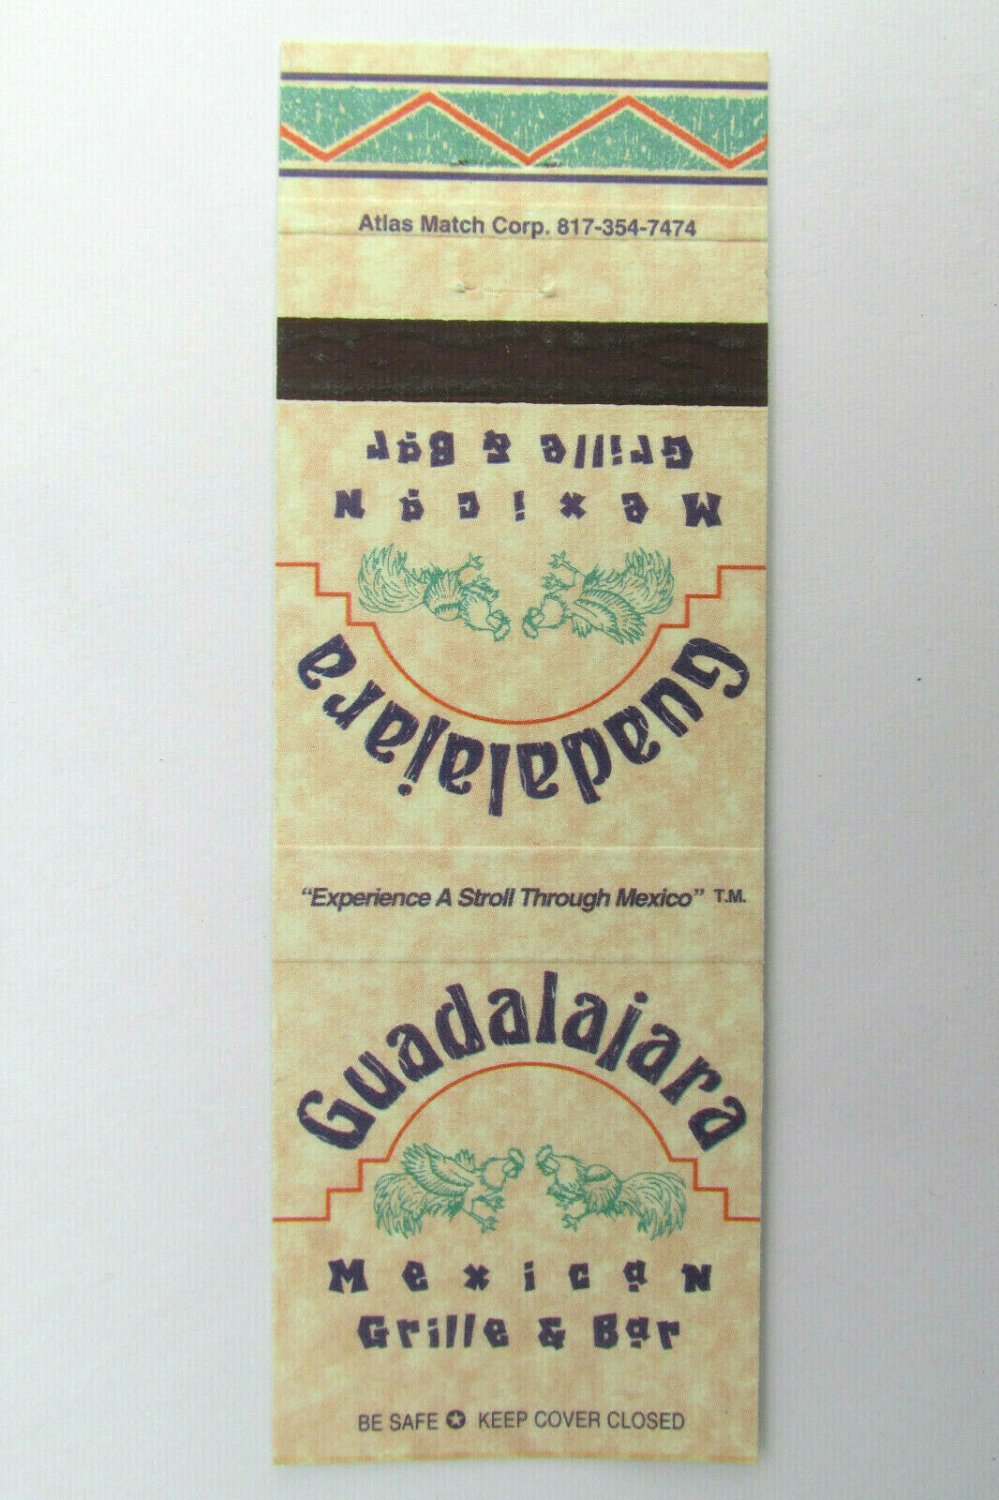 Guadalajara Mexican Grille & Bar  Houston, Texas Restaurant 20RS Matchbook Cover